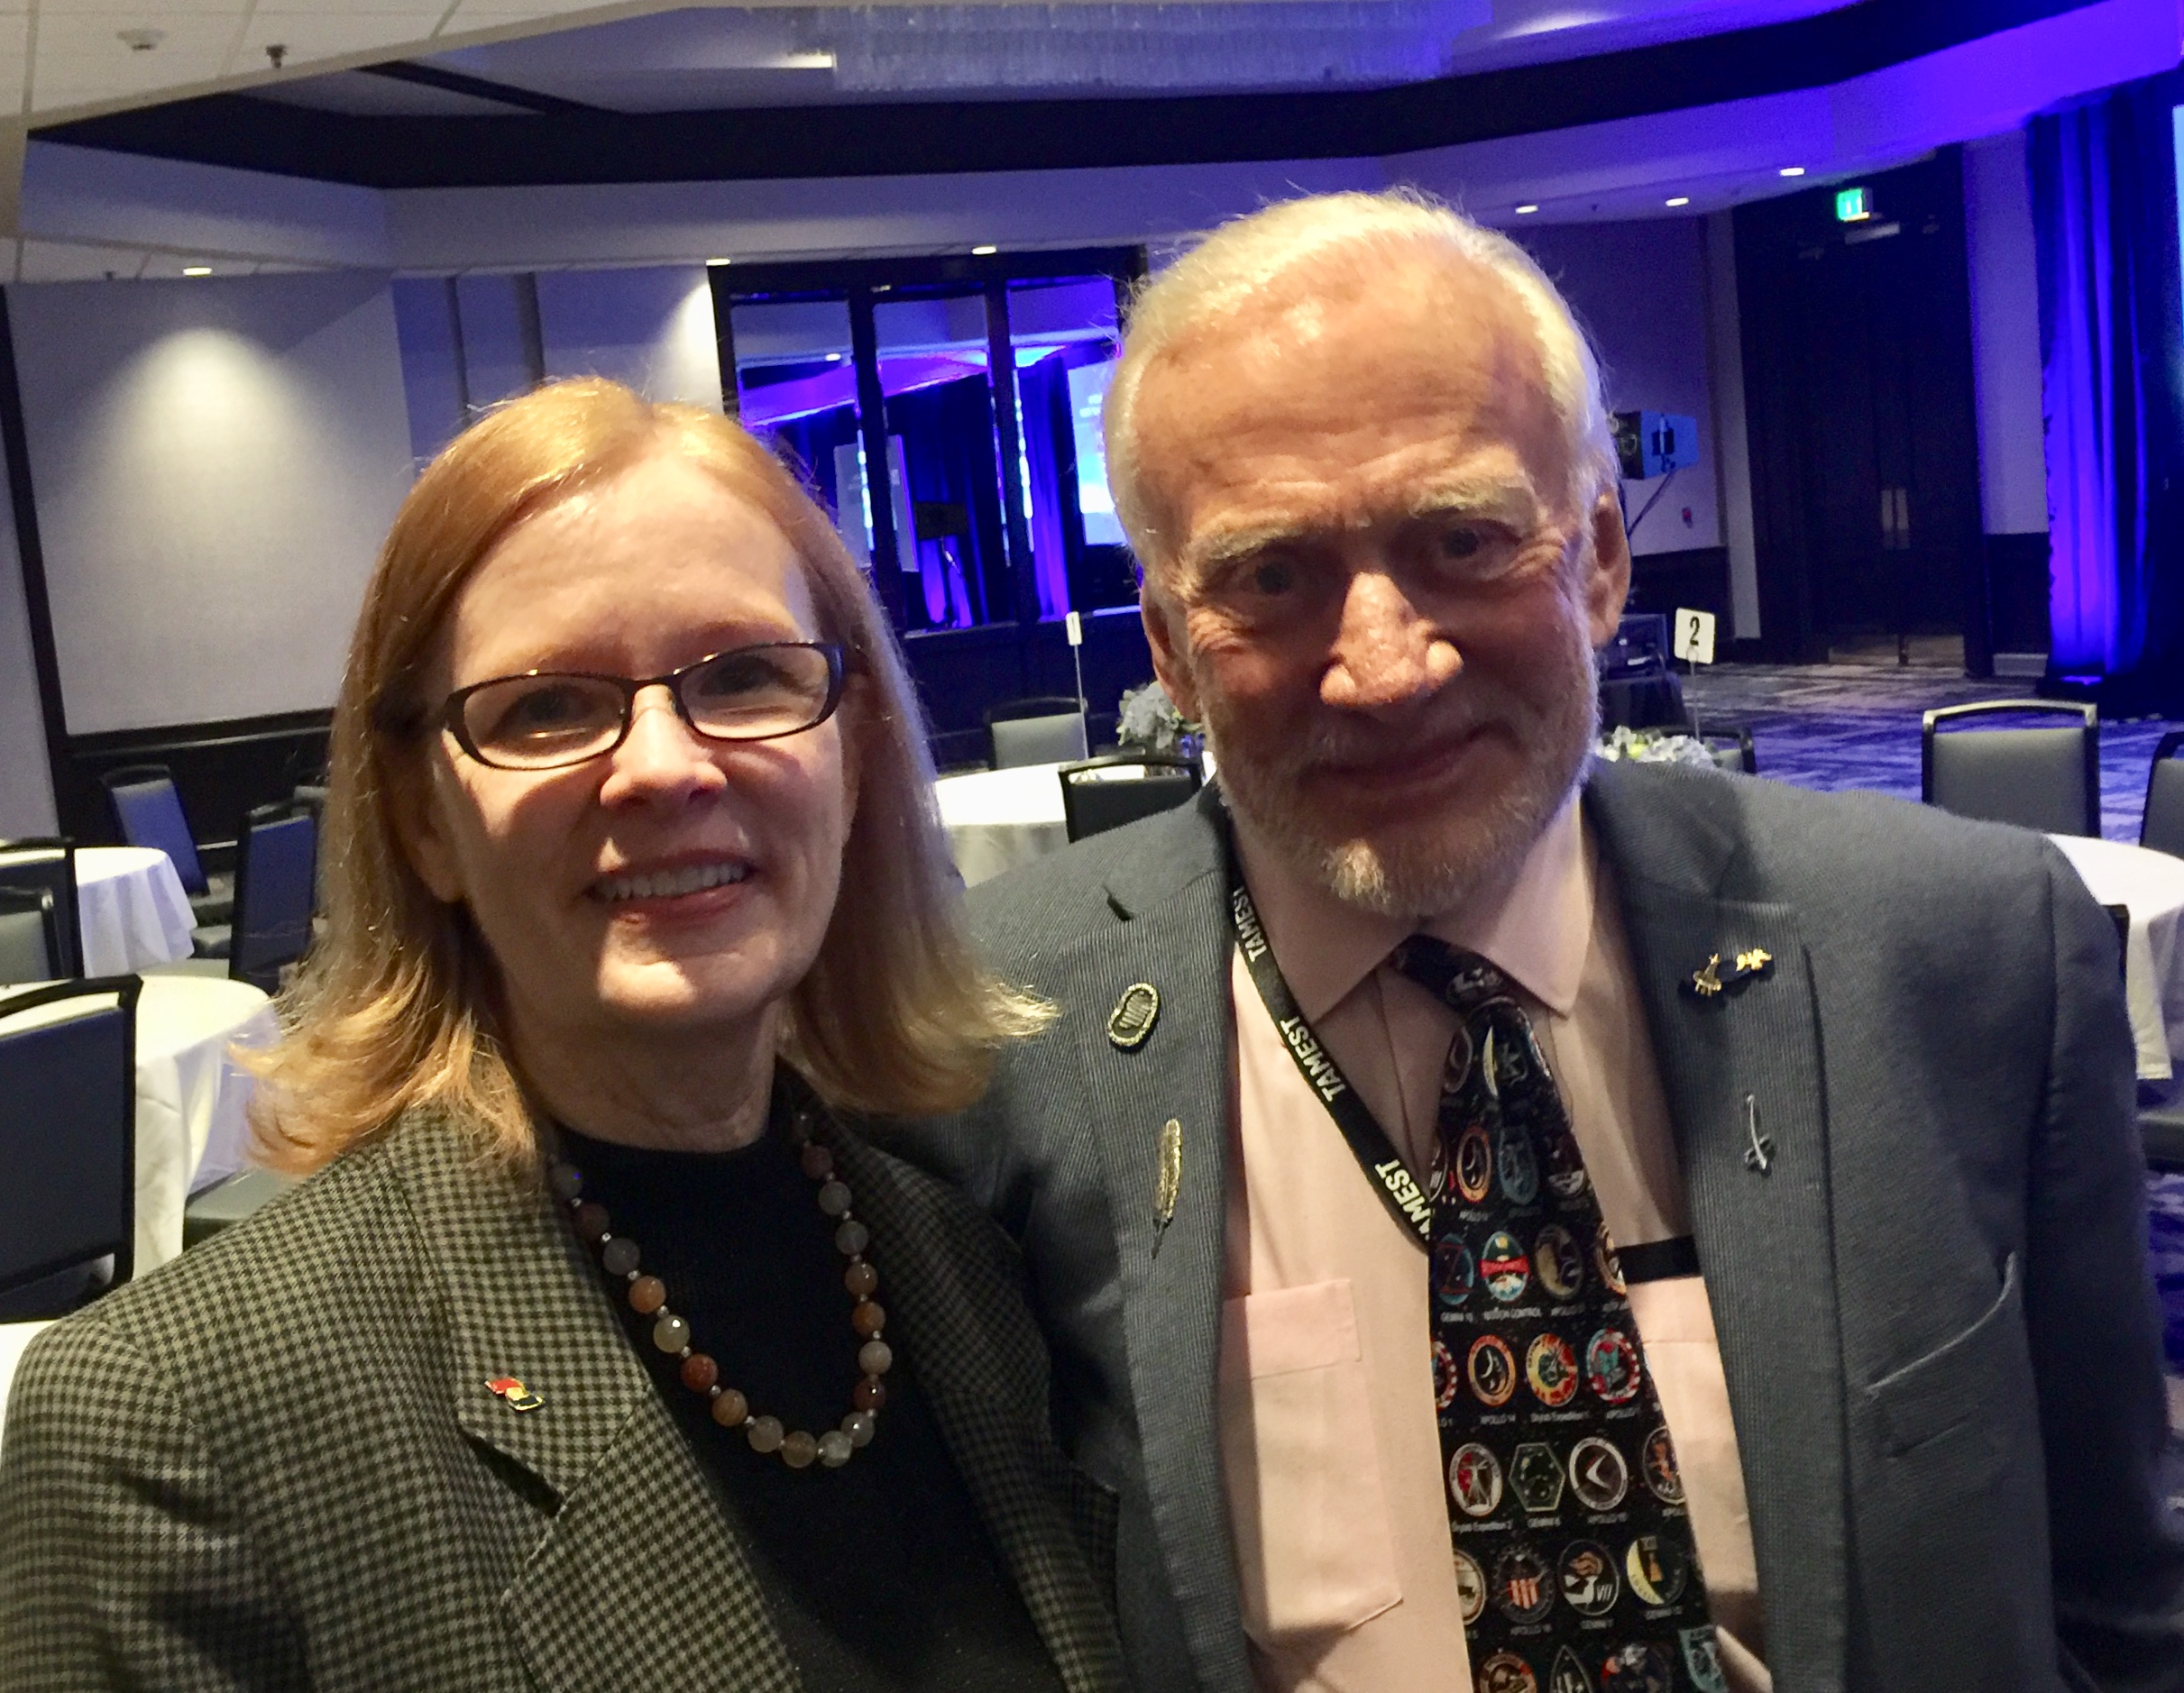 Hanging out with my famous coauthor, Buzz Aldrin in 2018